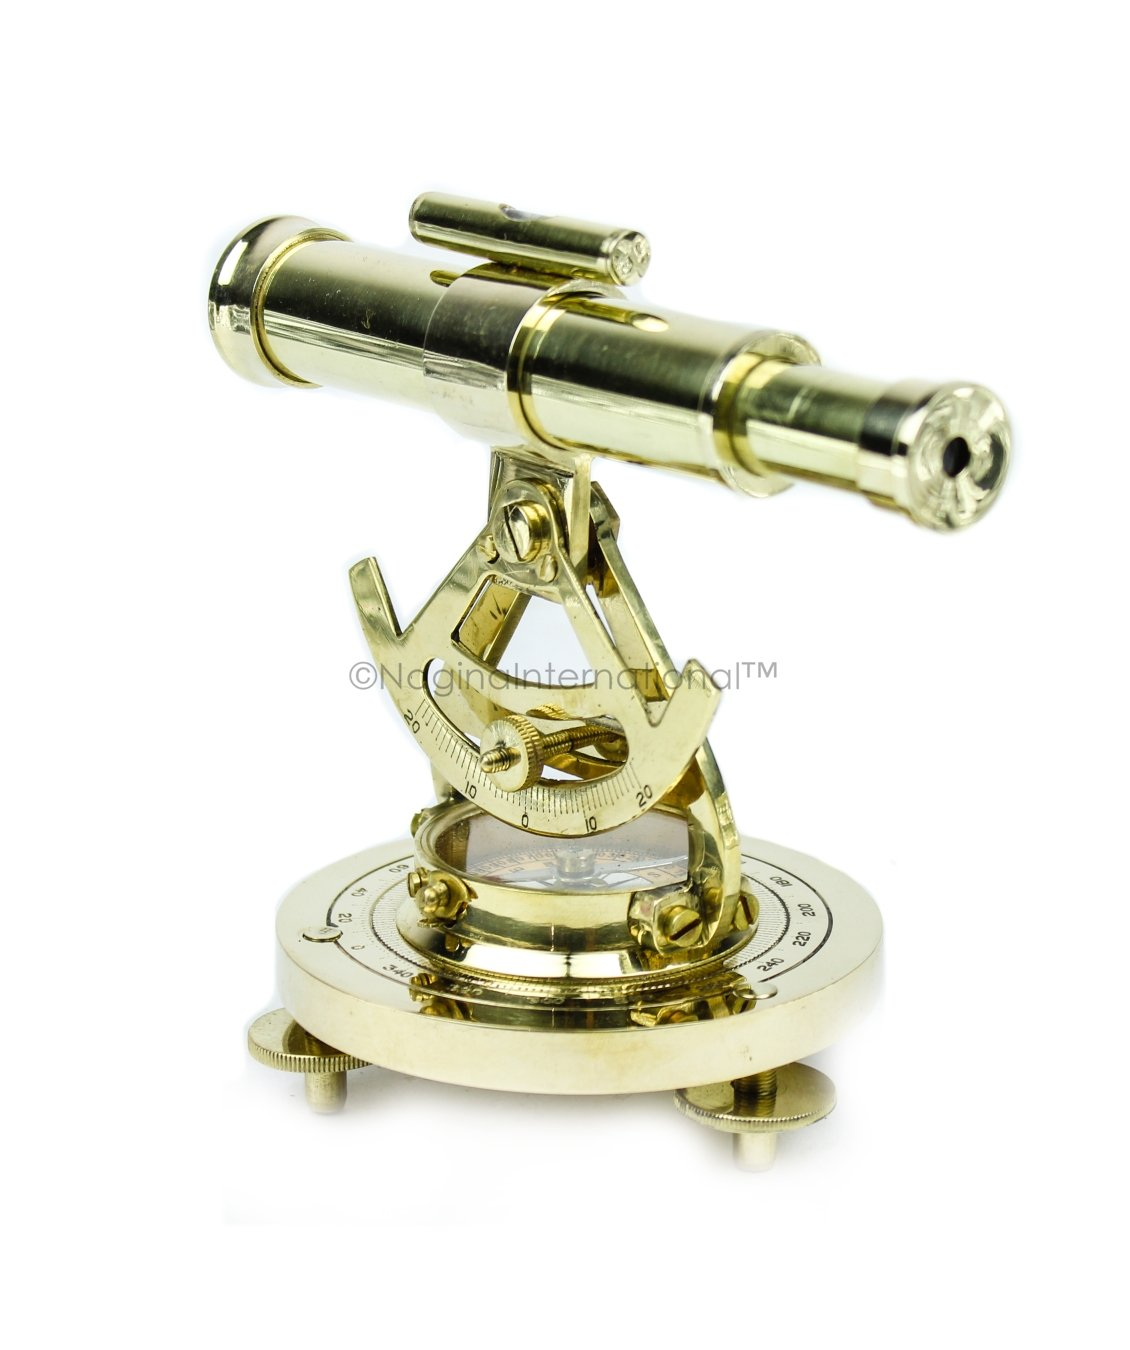 Nagina International Maritime Polished Brass Addaid Telescope Compass Functional Telescope & Level Meter | Home Decorative Metal Decor by Nagina International